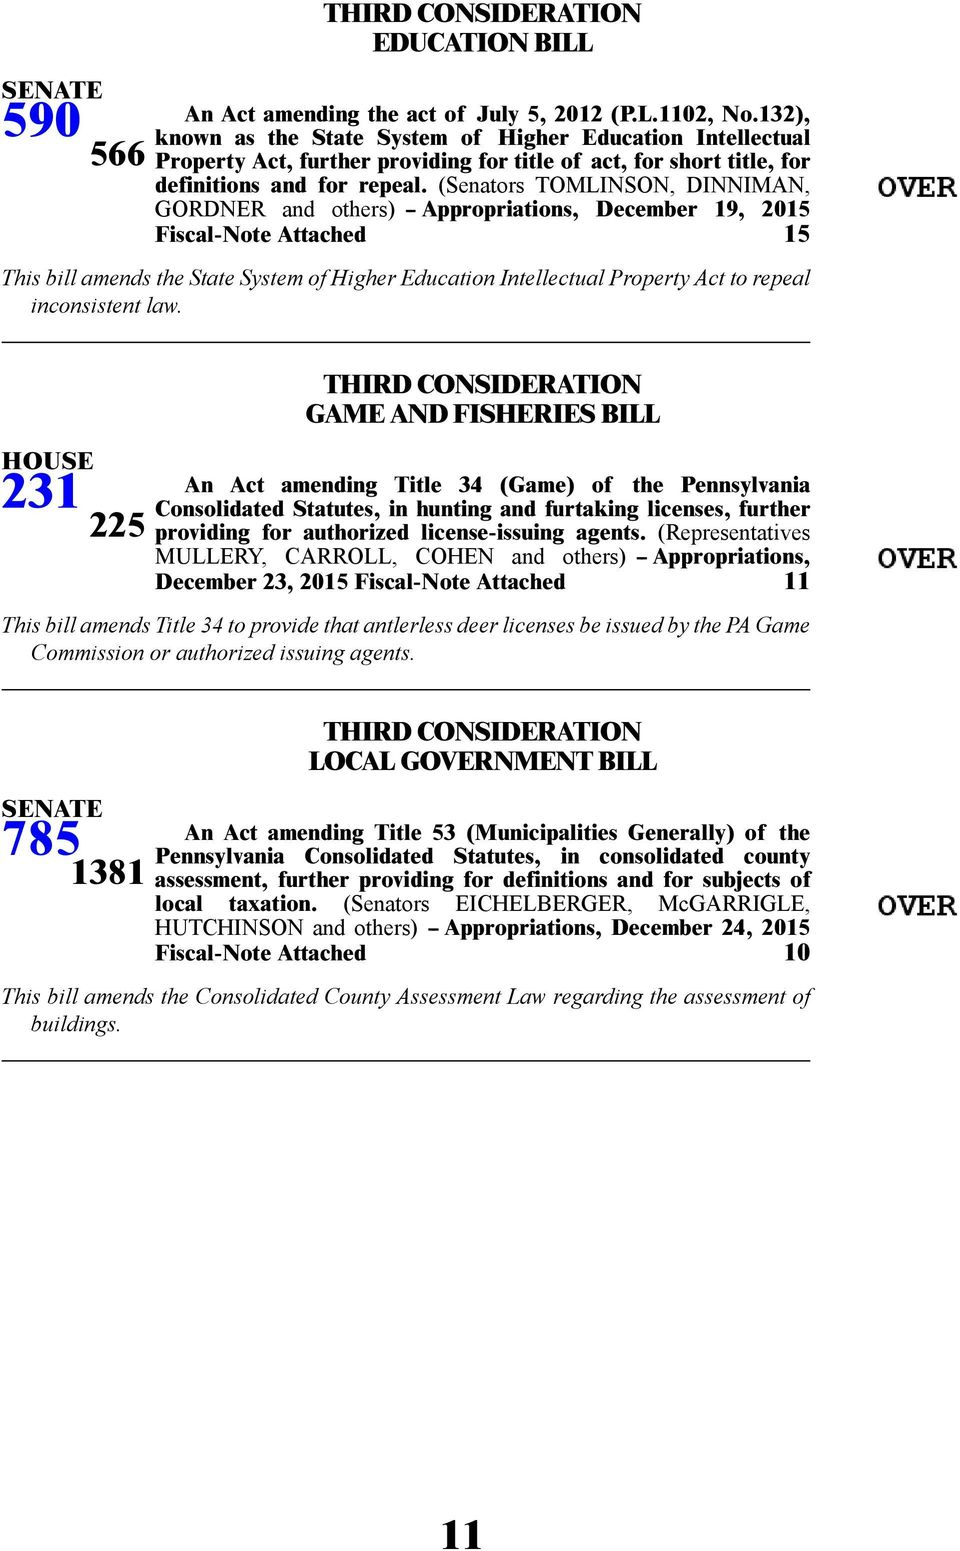 (Senators TOMLINSON, DINNIMAN, GORDNER and others) -- Appropriations, December 19, 2015 Fiscal-Note Attached 15 This bill amends the State System of Higher Education Intellectual Property Act to